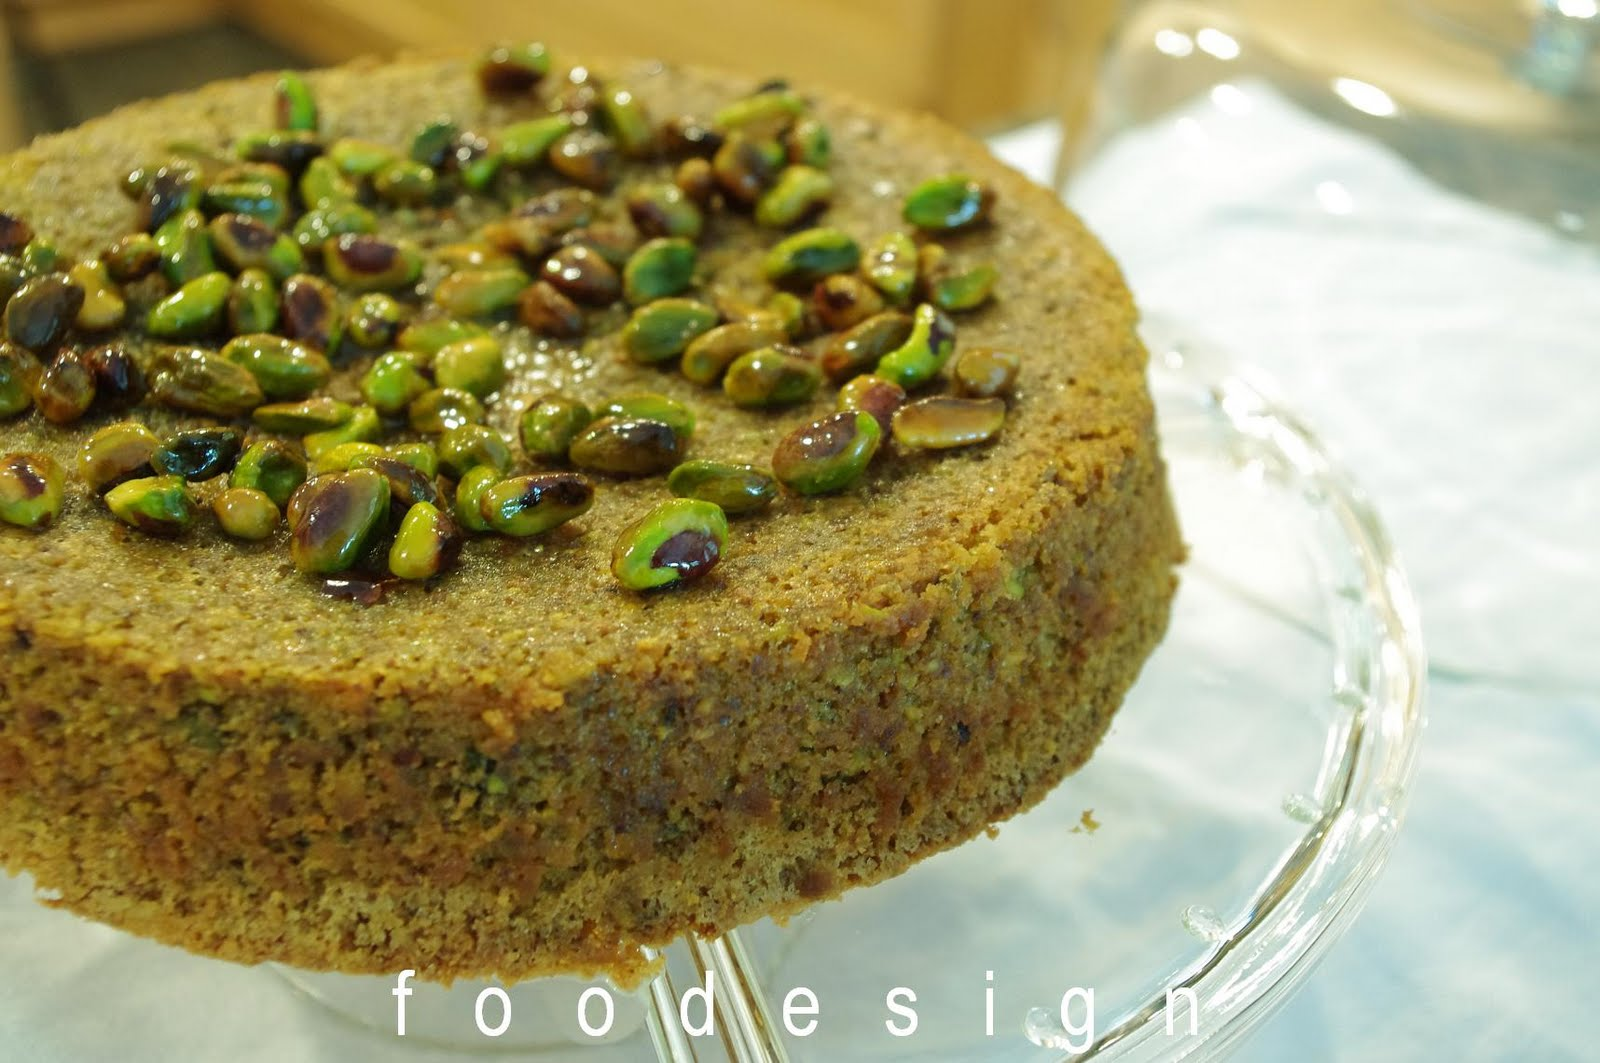 Best Icing For Pistachio Cake